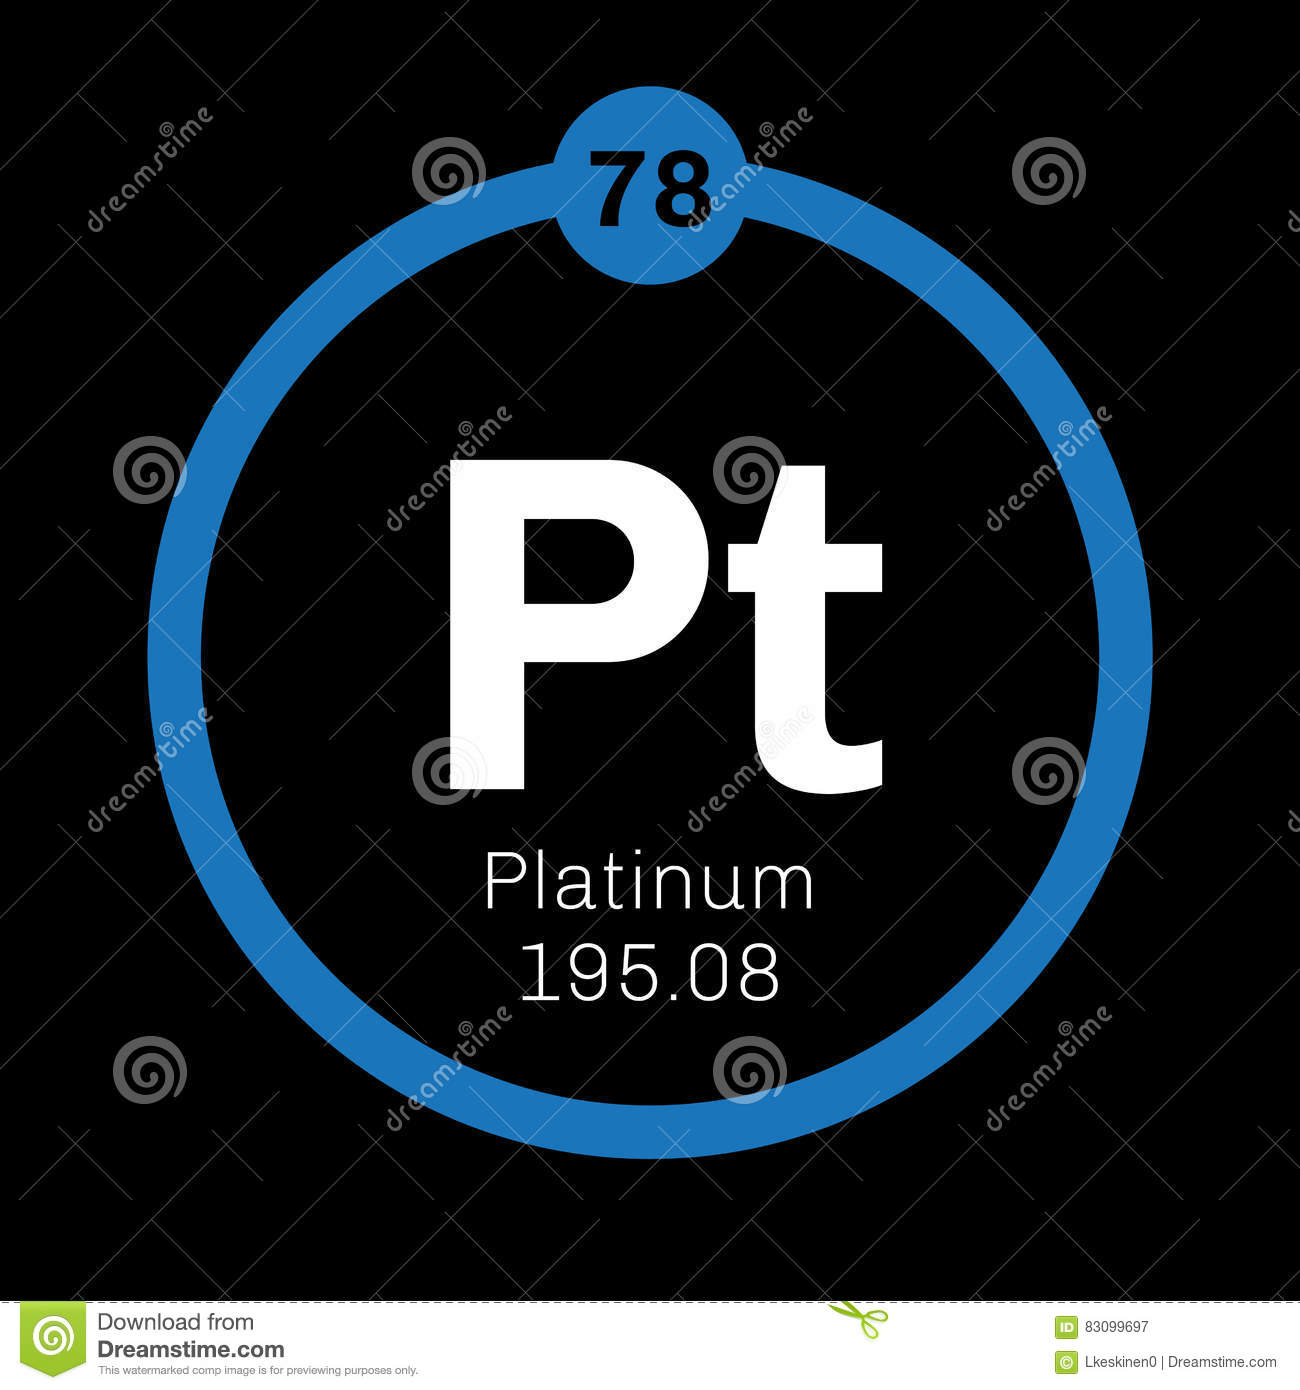 Platinum Chemical Element Stock Image Image Of Mass 83099697